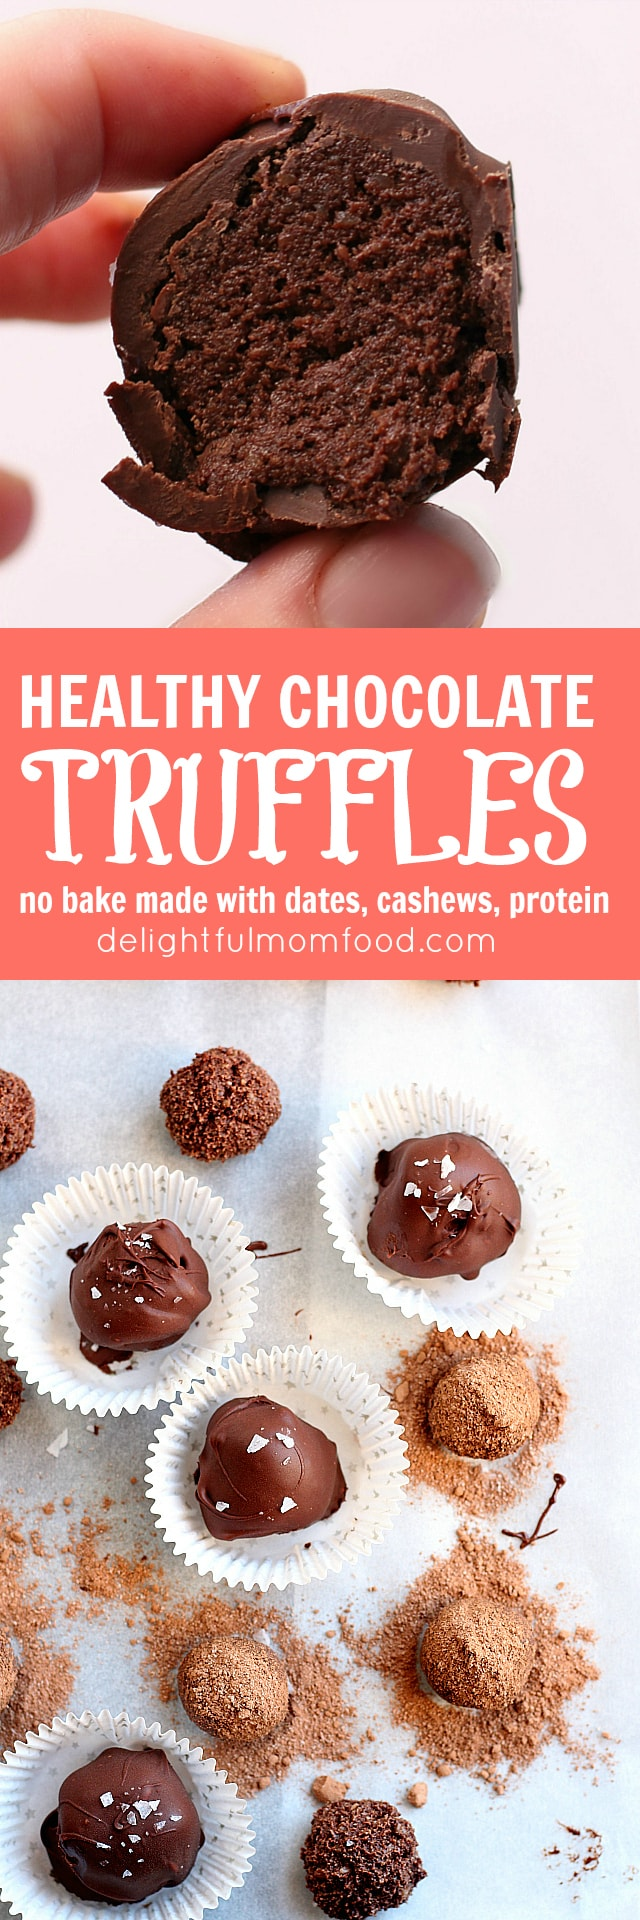 Guilt free Chocolate truffles made with dates, cashews, protein powder and coconut flour